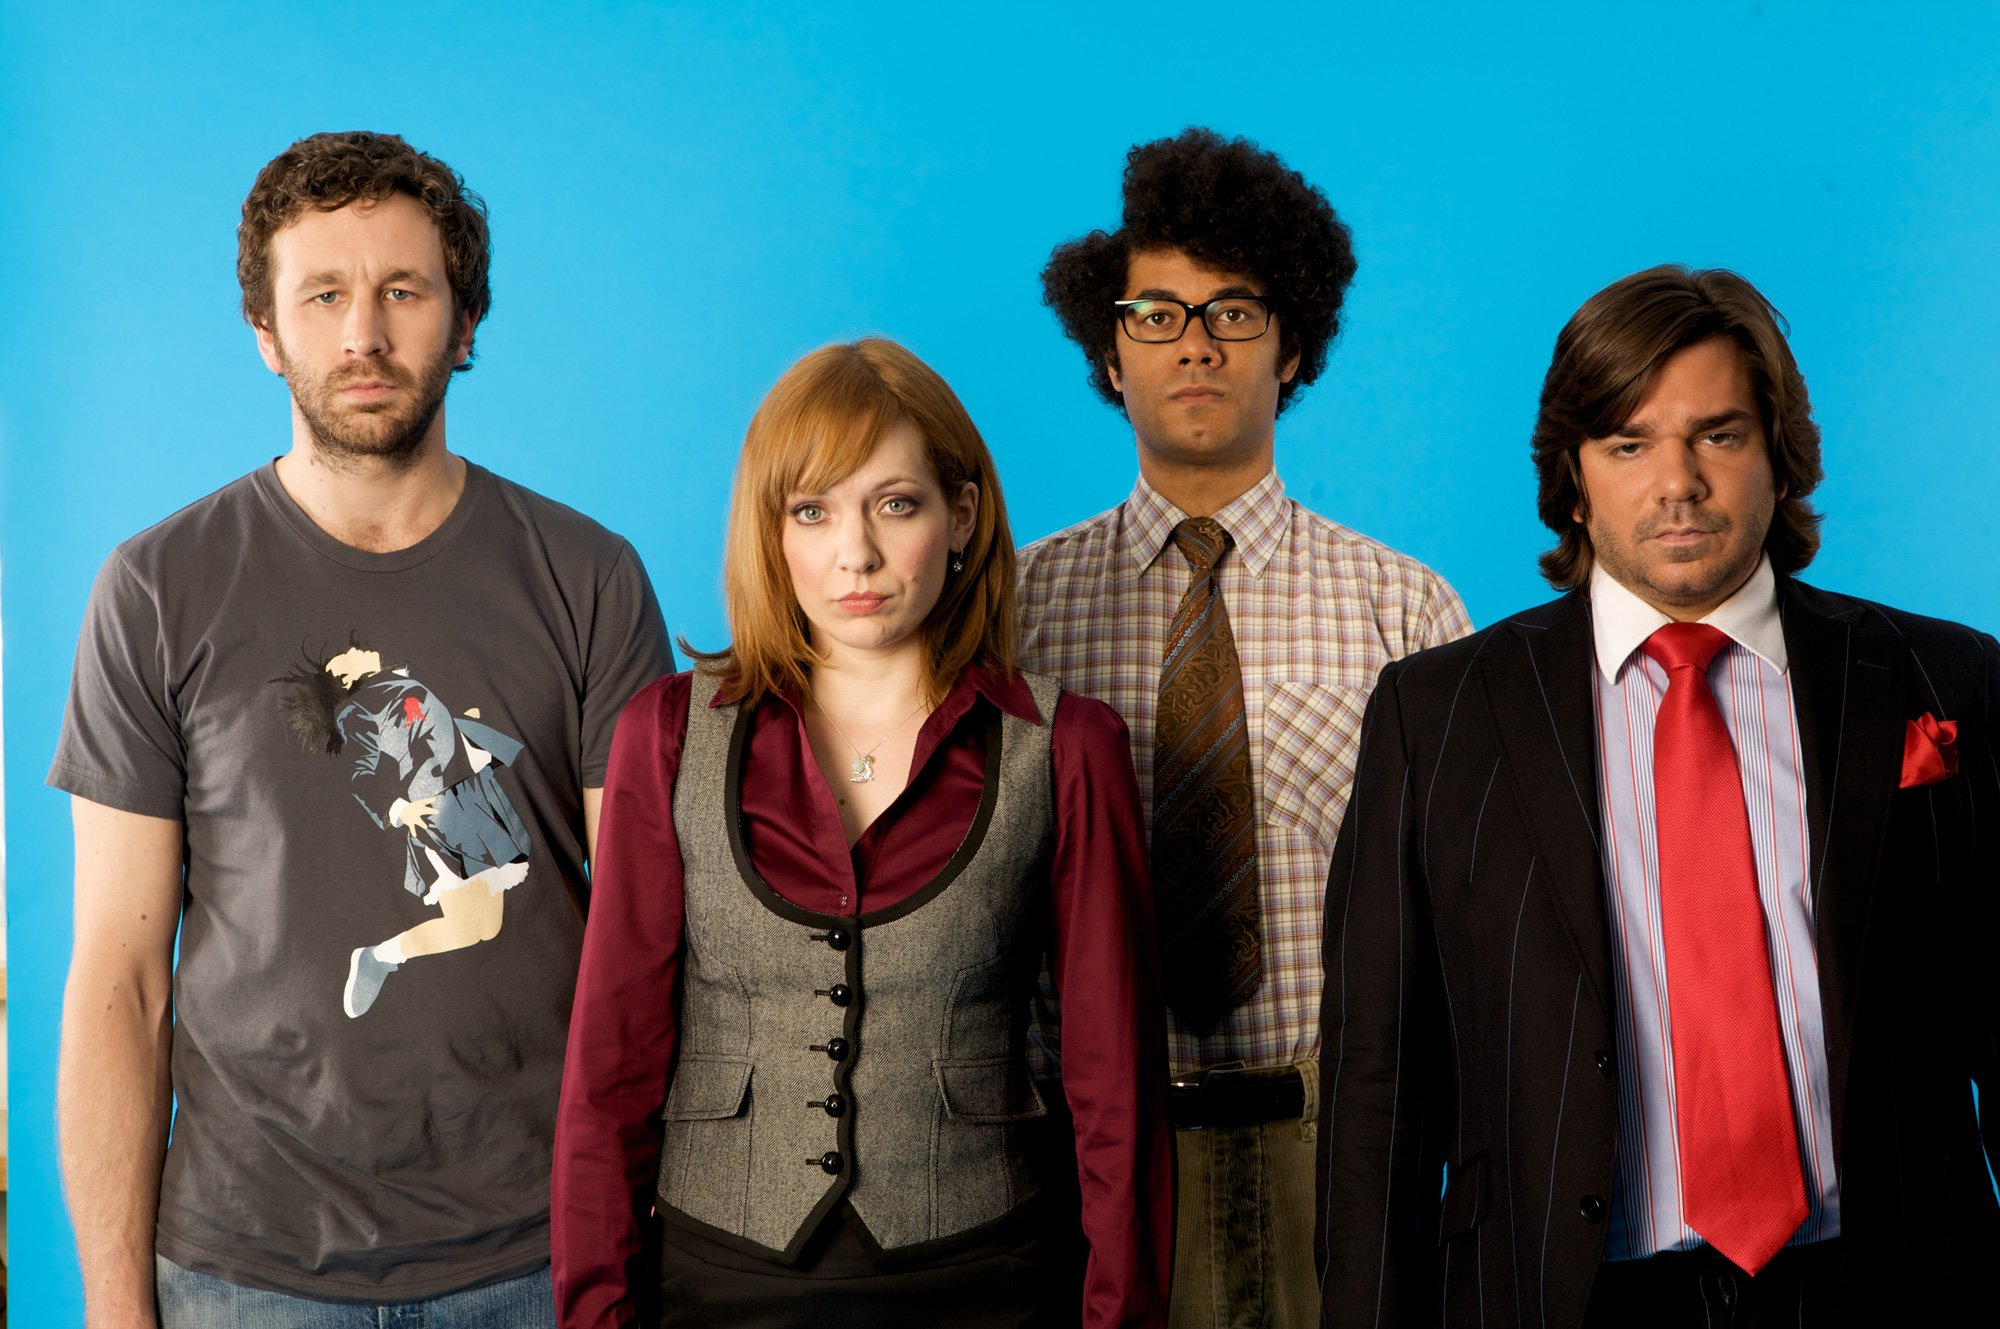 Interview: Chris O'Dowd, Katherine Parkinson, and Matt Berry on The IT Crowd